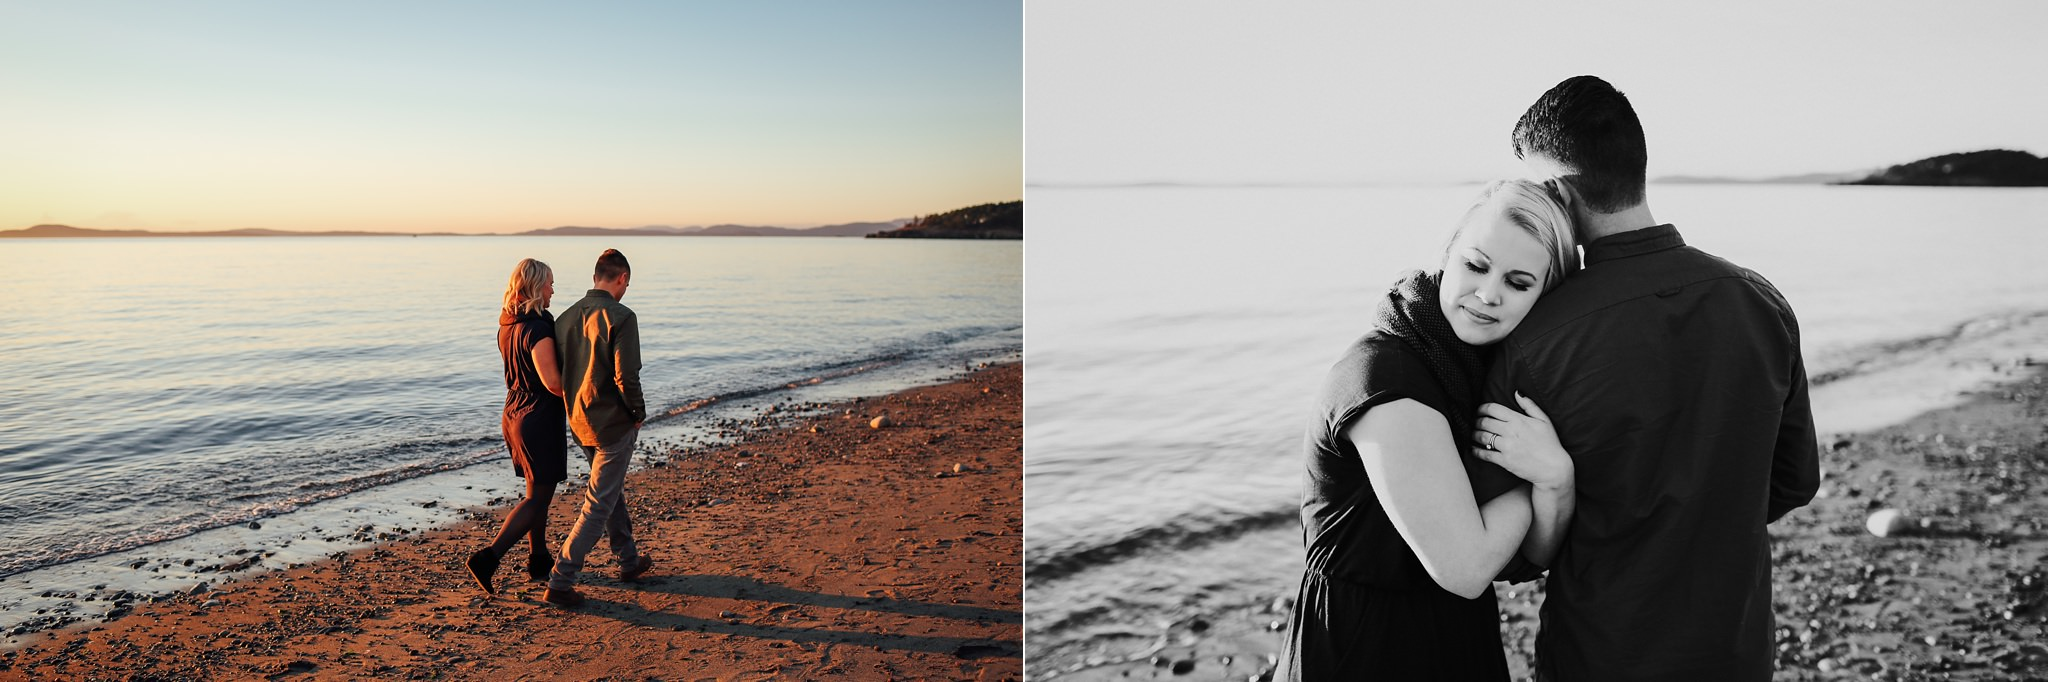 Whidbey-Island-Family-Photographer-Kara-Chappell-Photography_1389.jpg